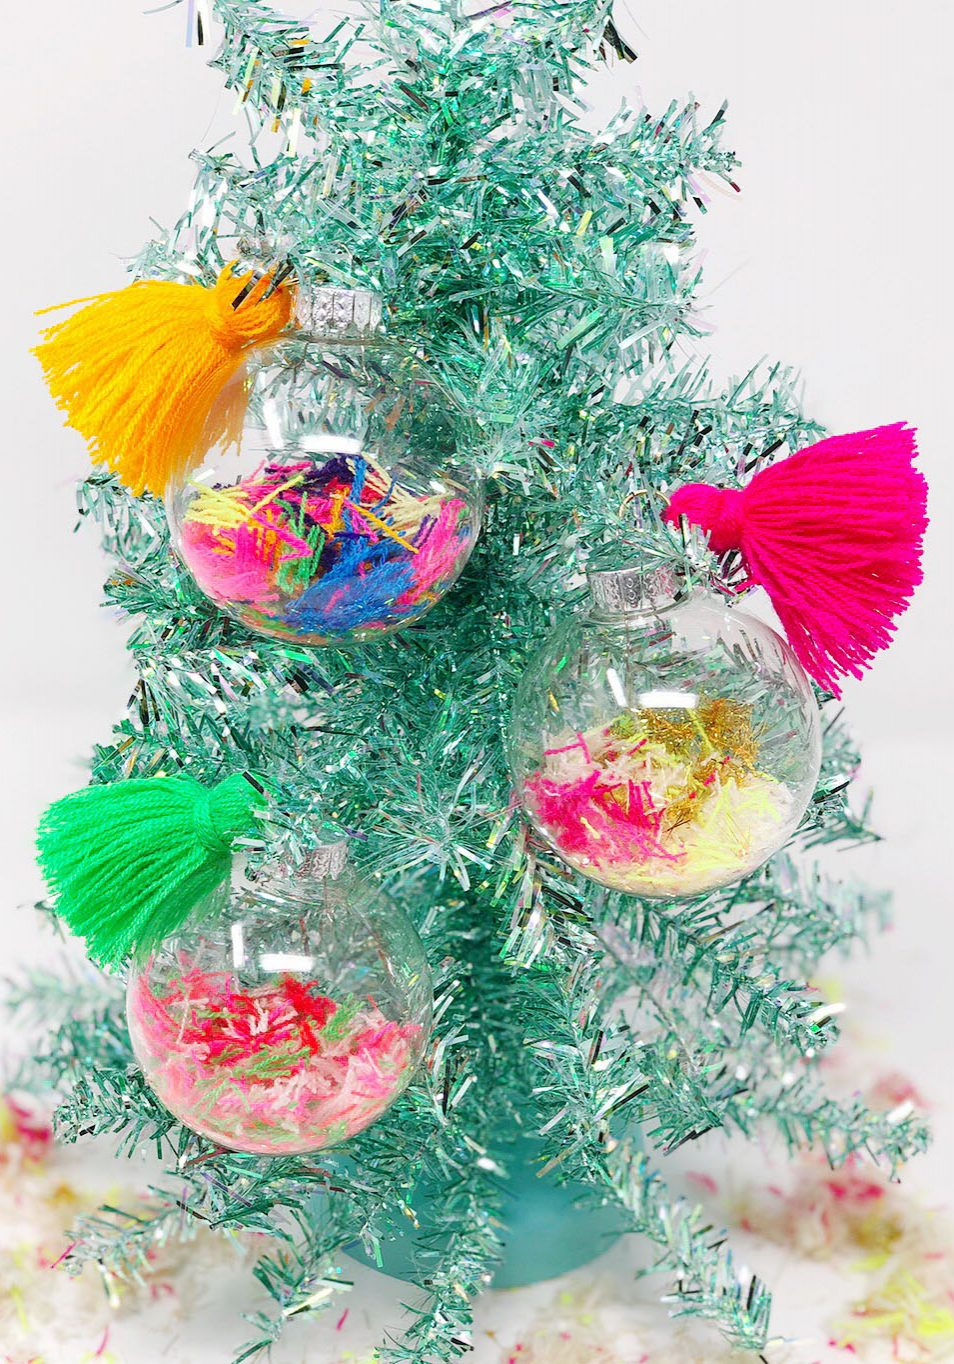 DIY Yarn Scrap Pom Poms The Neon Tea Party